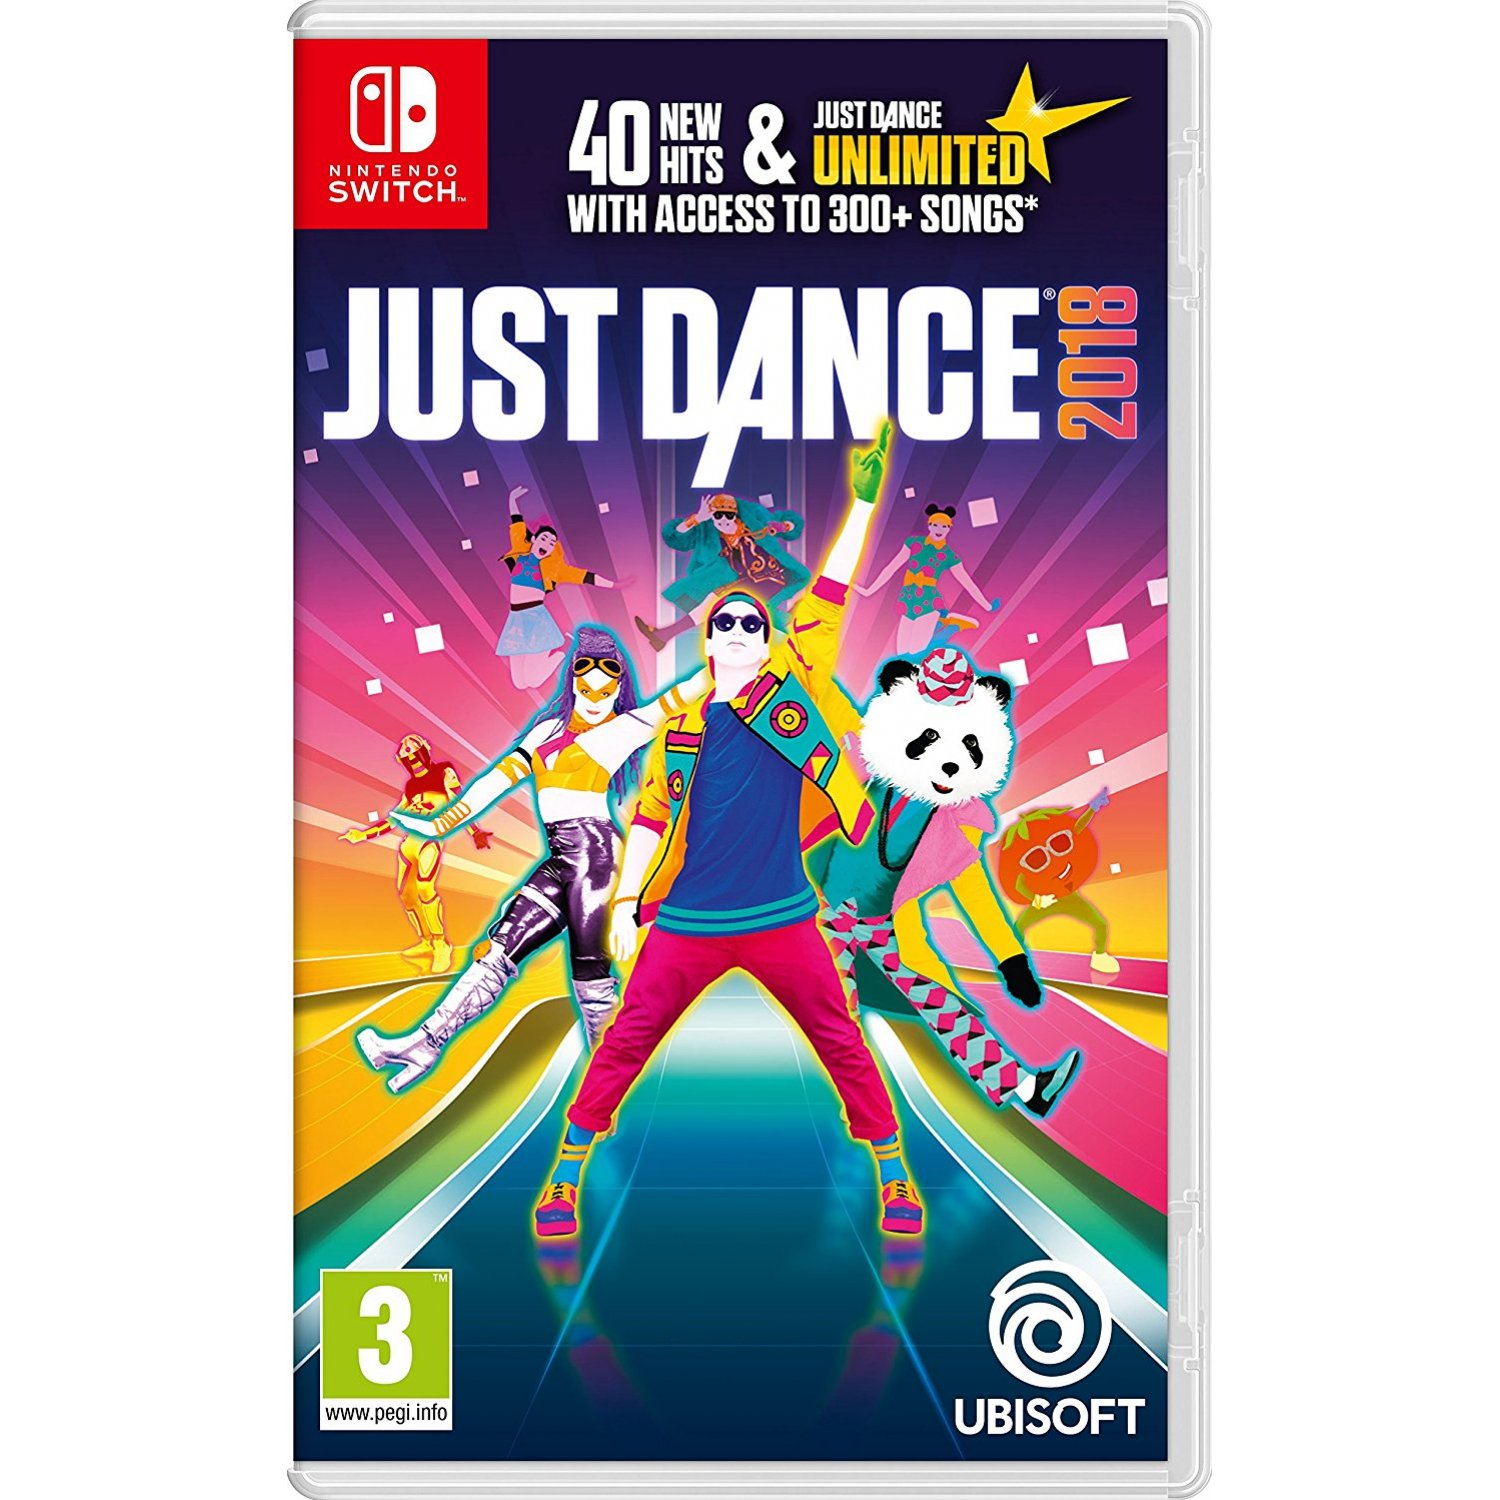 Nintendo Switch : Just Dance 2018 (EU)